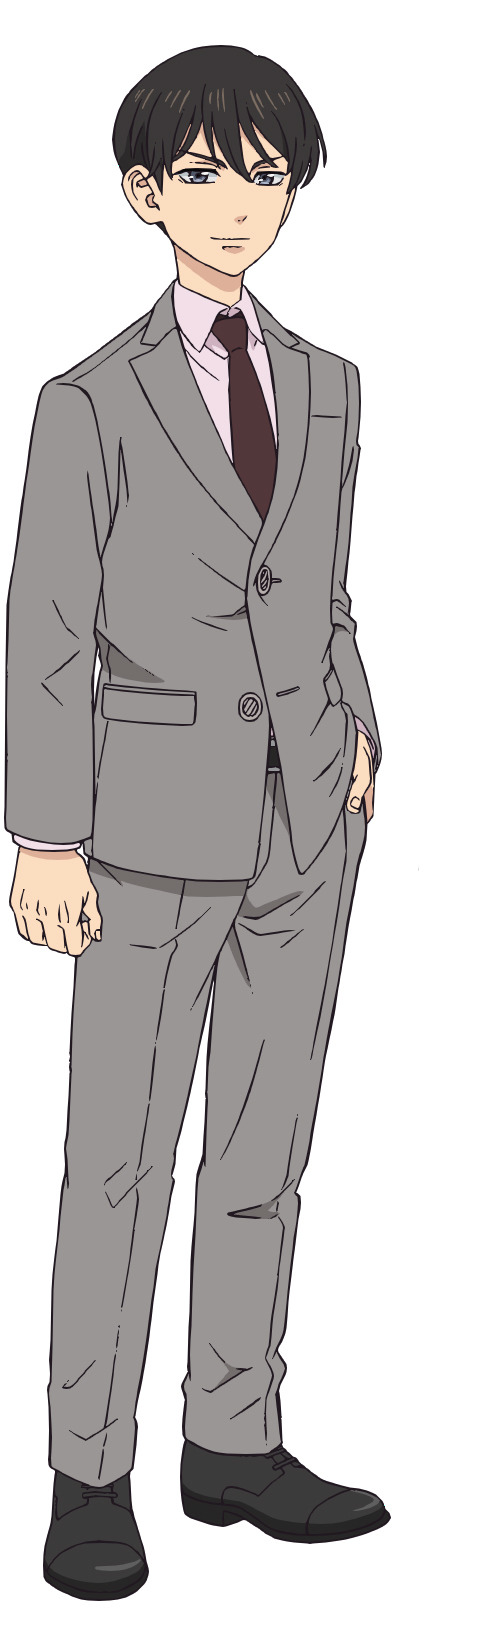 A character setting of Naoto Tachibana from the upcoming Tokyo Revengers TV anime.